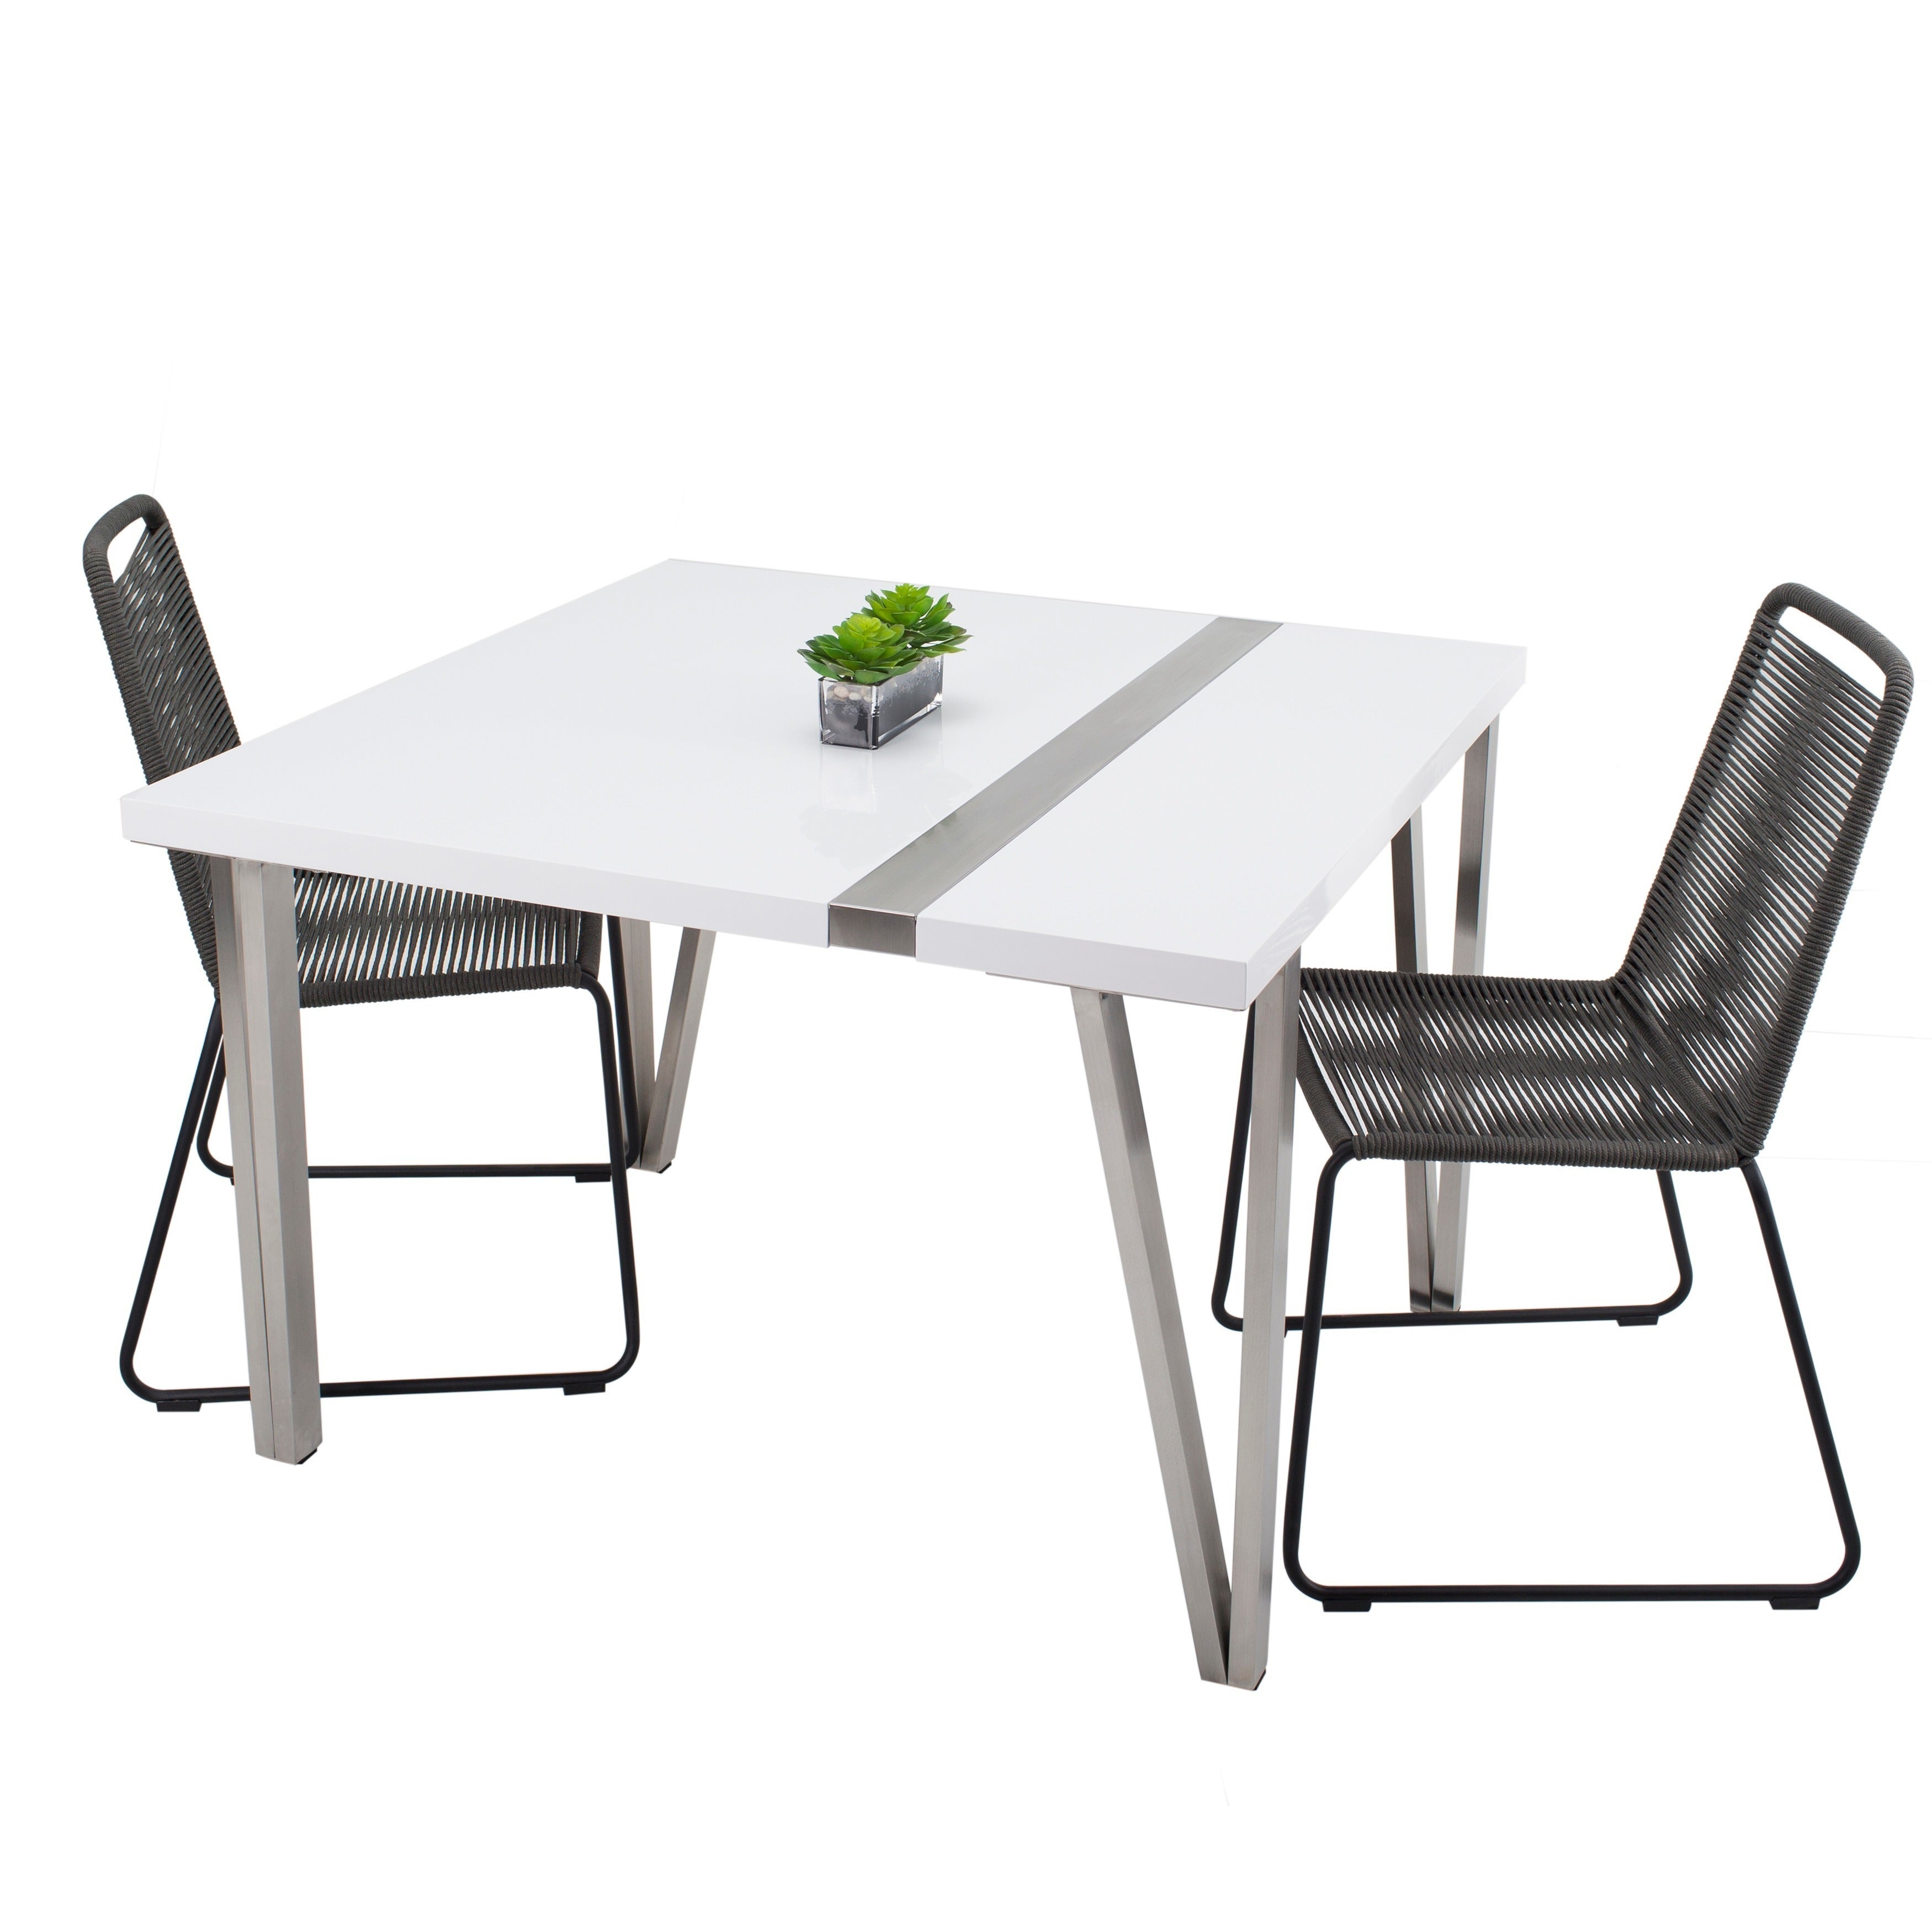 Mix White High Gloss Lacquer Square Top And Brushed Stainless Steel Legs Table Free Shipping Today 13929419